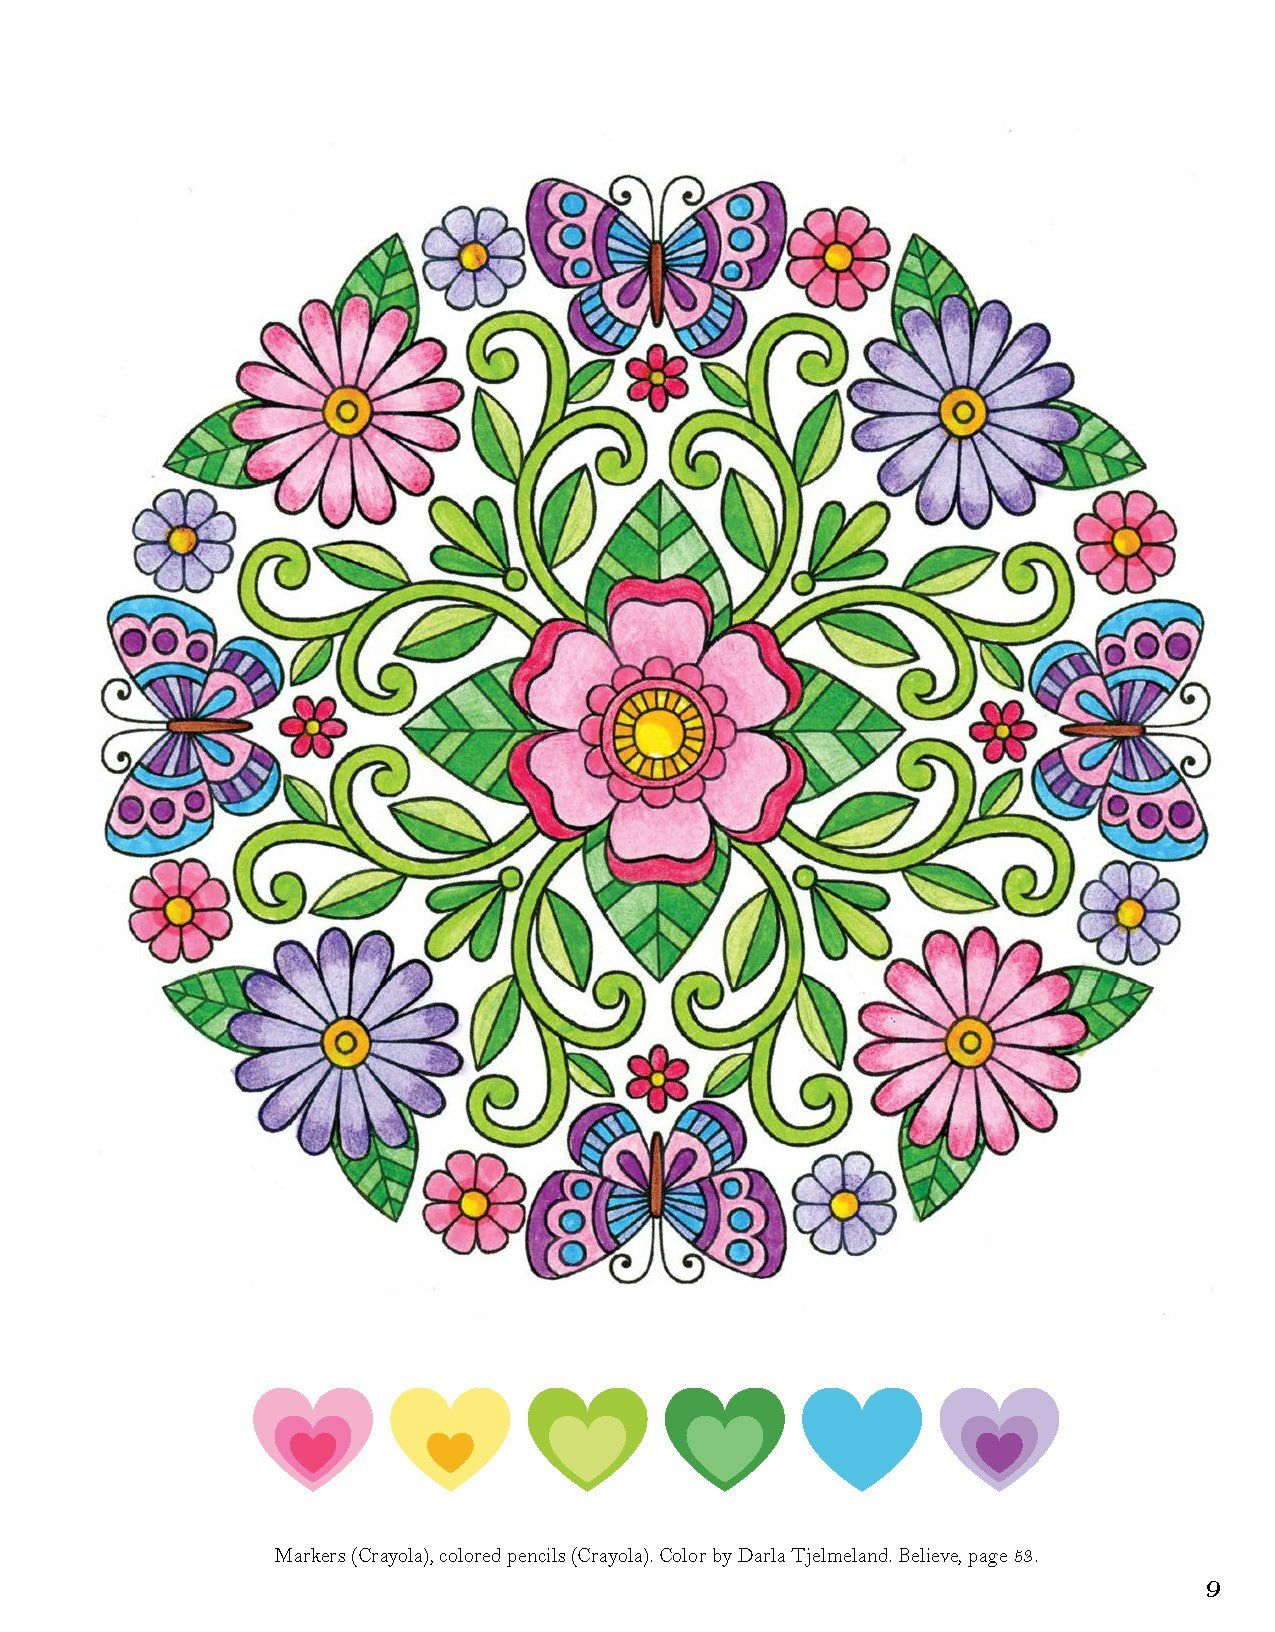 Colorful Creations Butterfly Mandalas Coloring Book Pages Designed To Inspire Creativity Jess Volinsk Coloring Book Art Mandala Design Art Butterfly Mandala